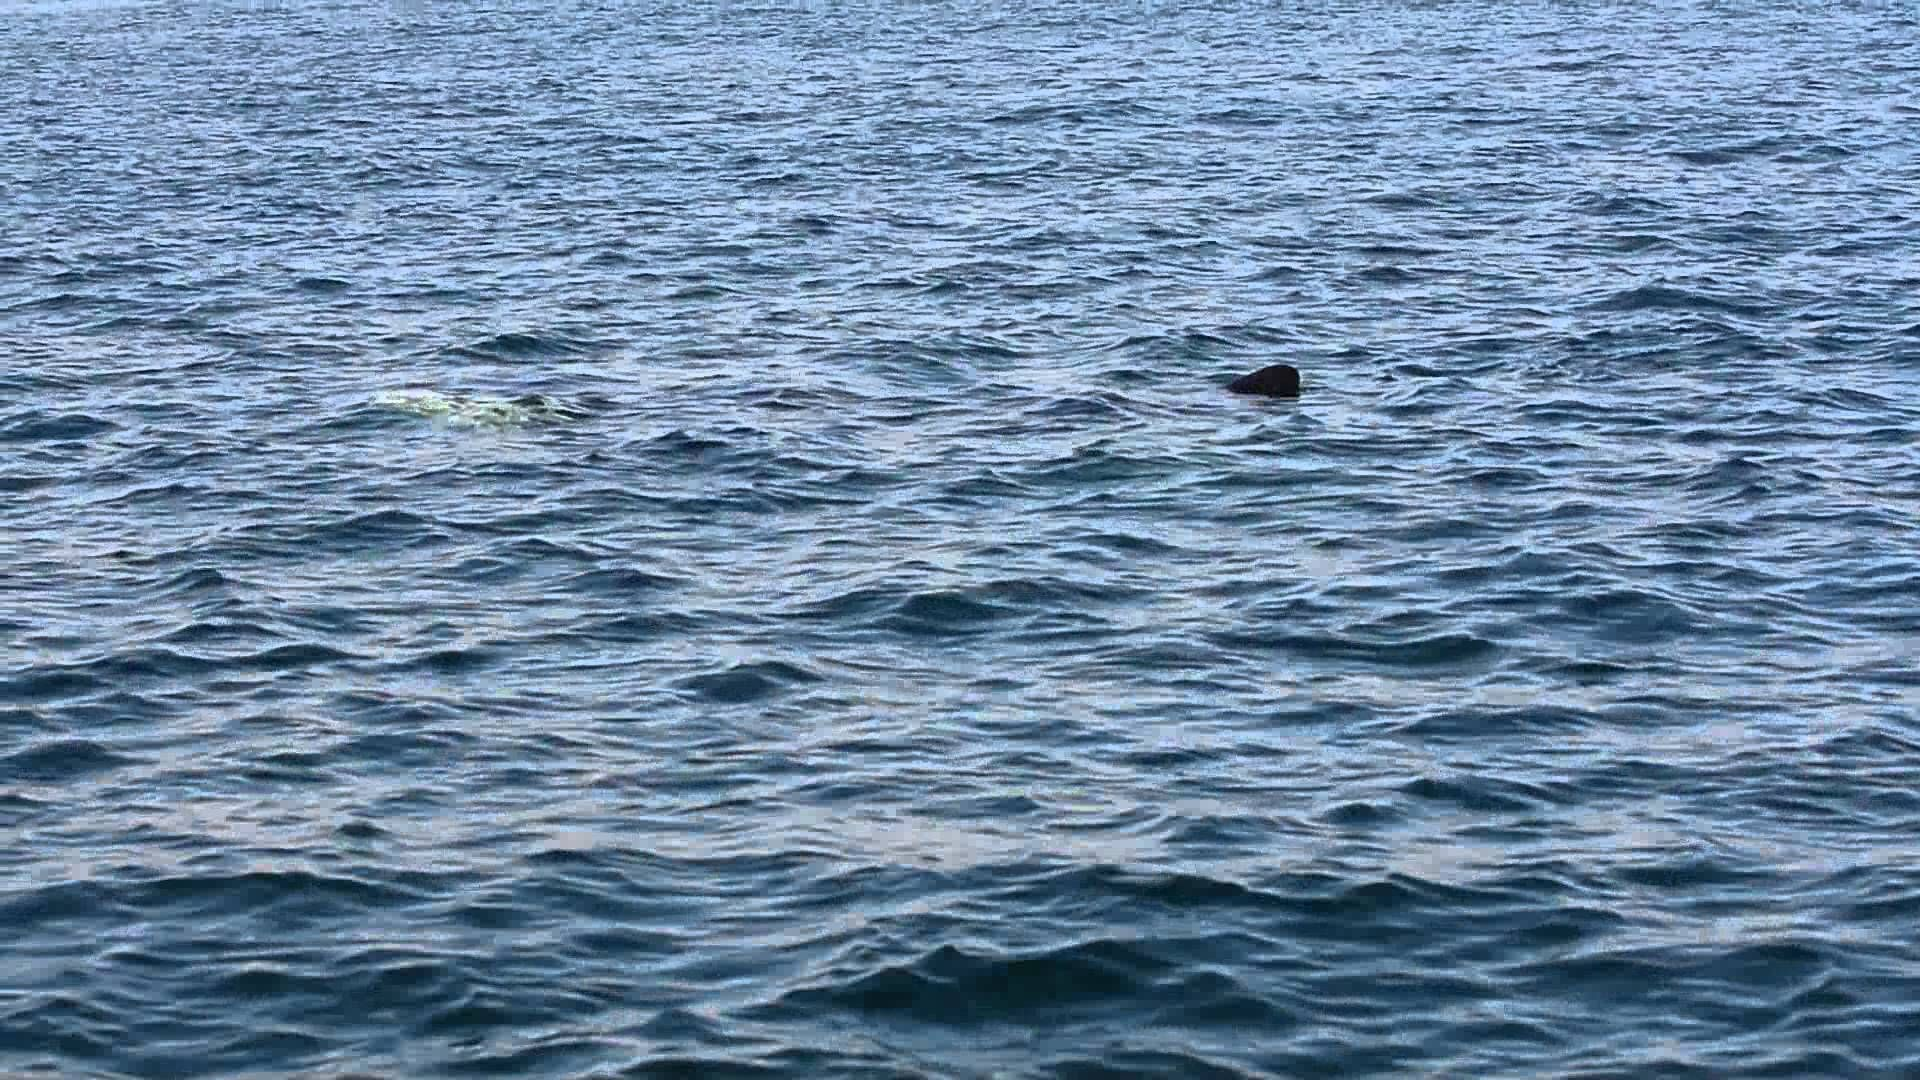 Bay of Fundy Killer Whale